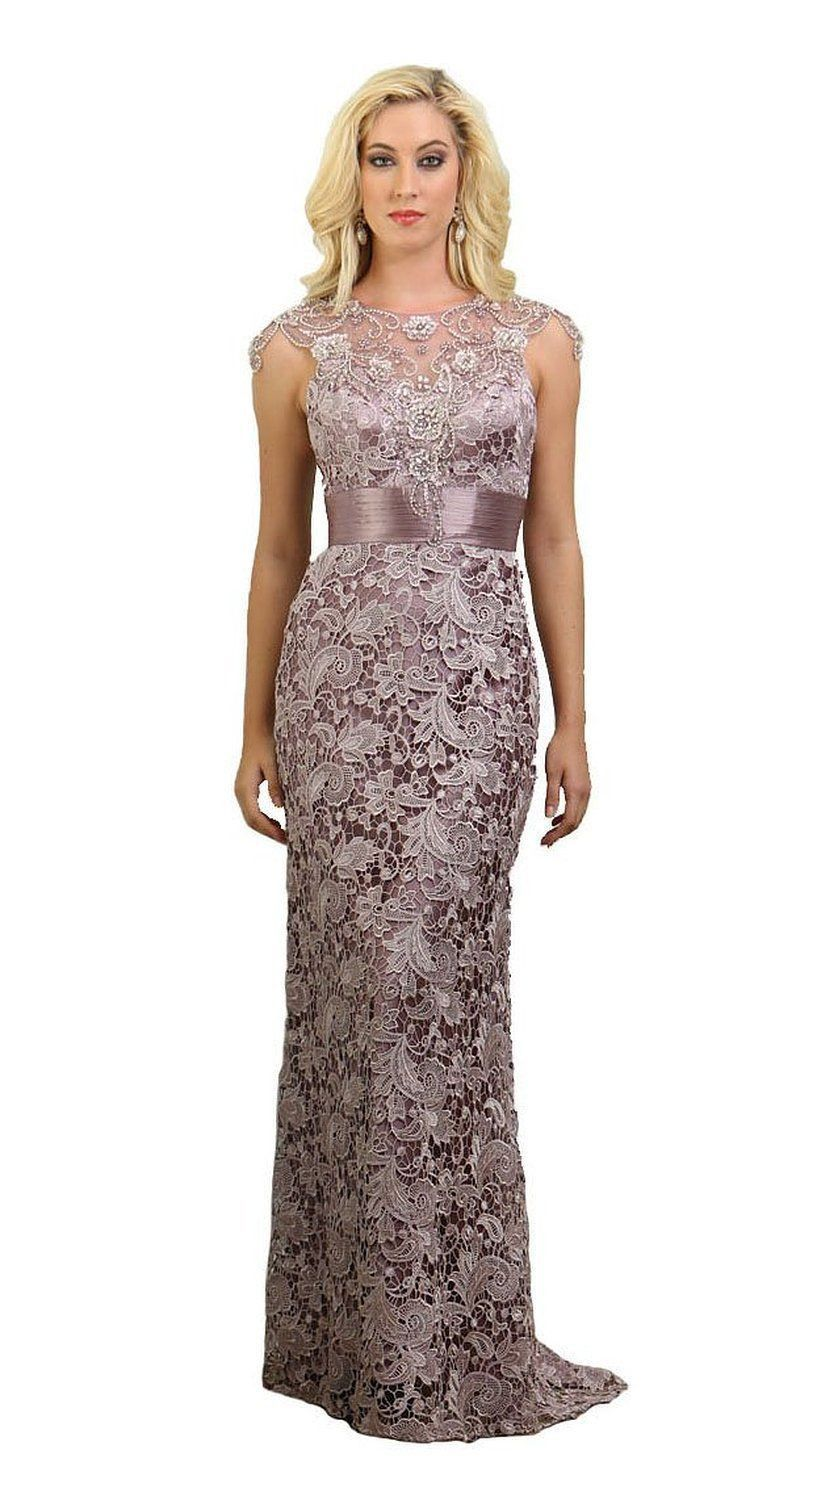 Long lace mother of the bride dress 2018 formal for Formal wedding dresses for mother of the bride